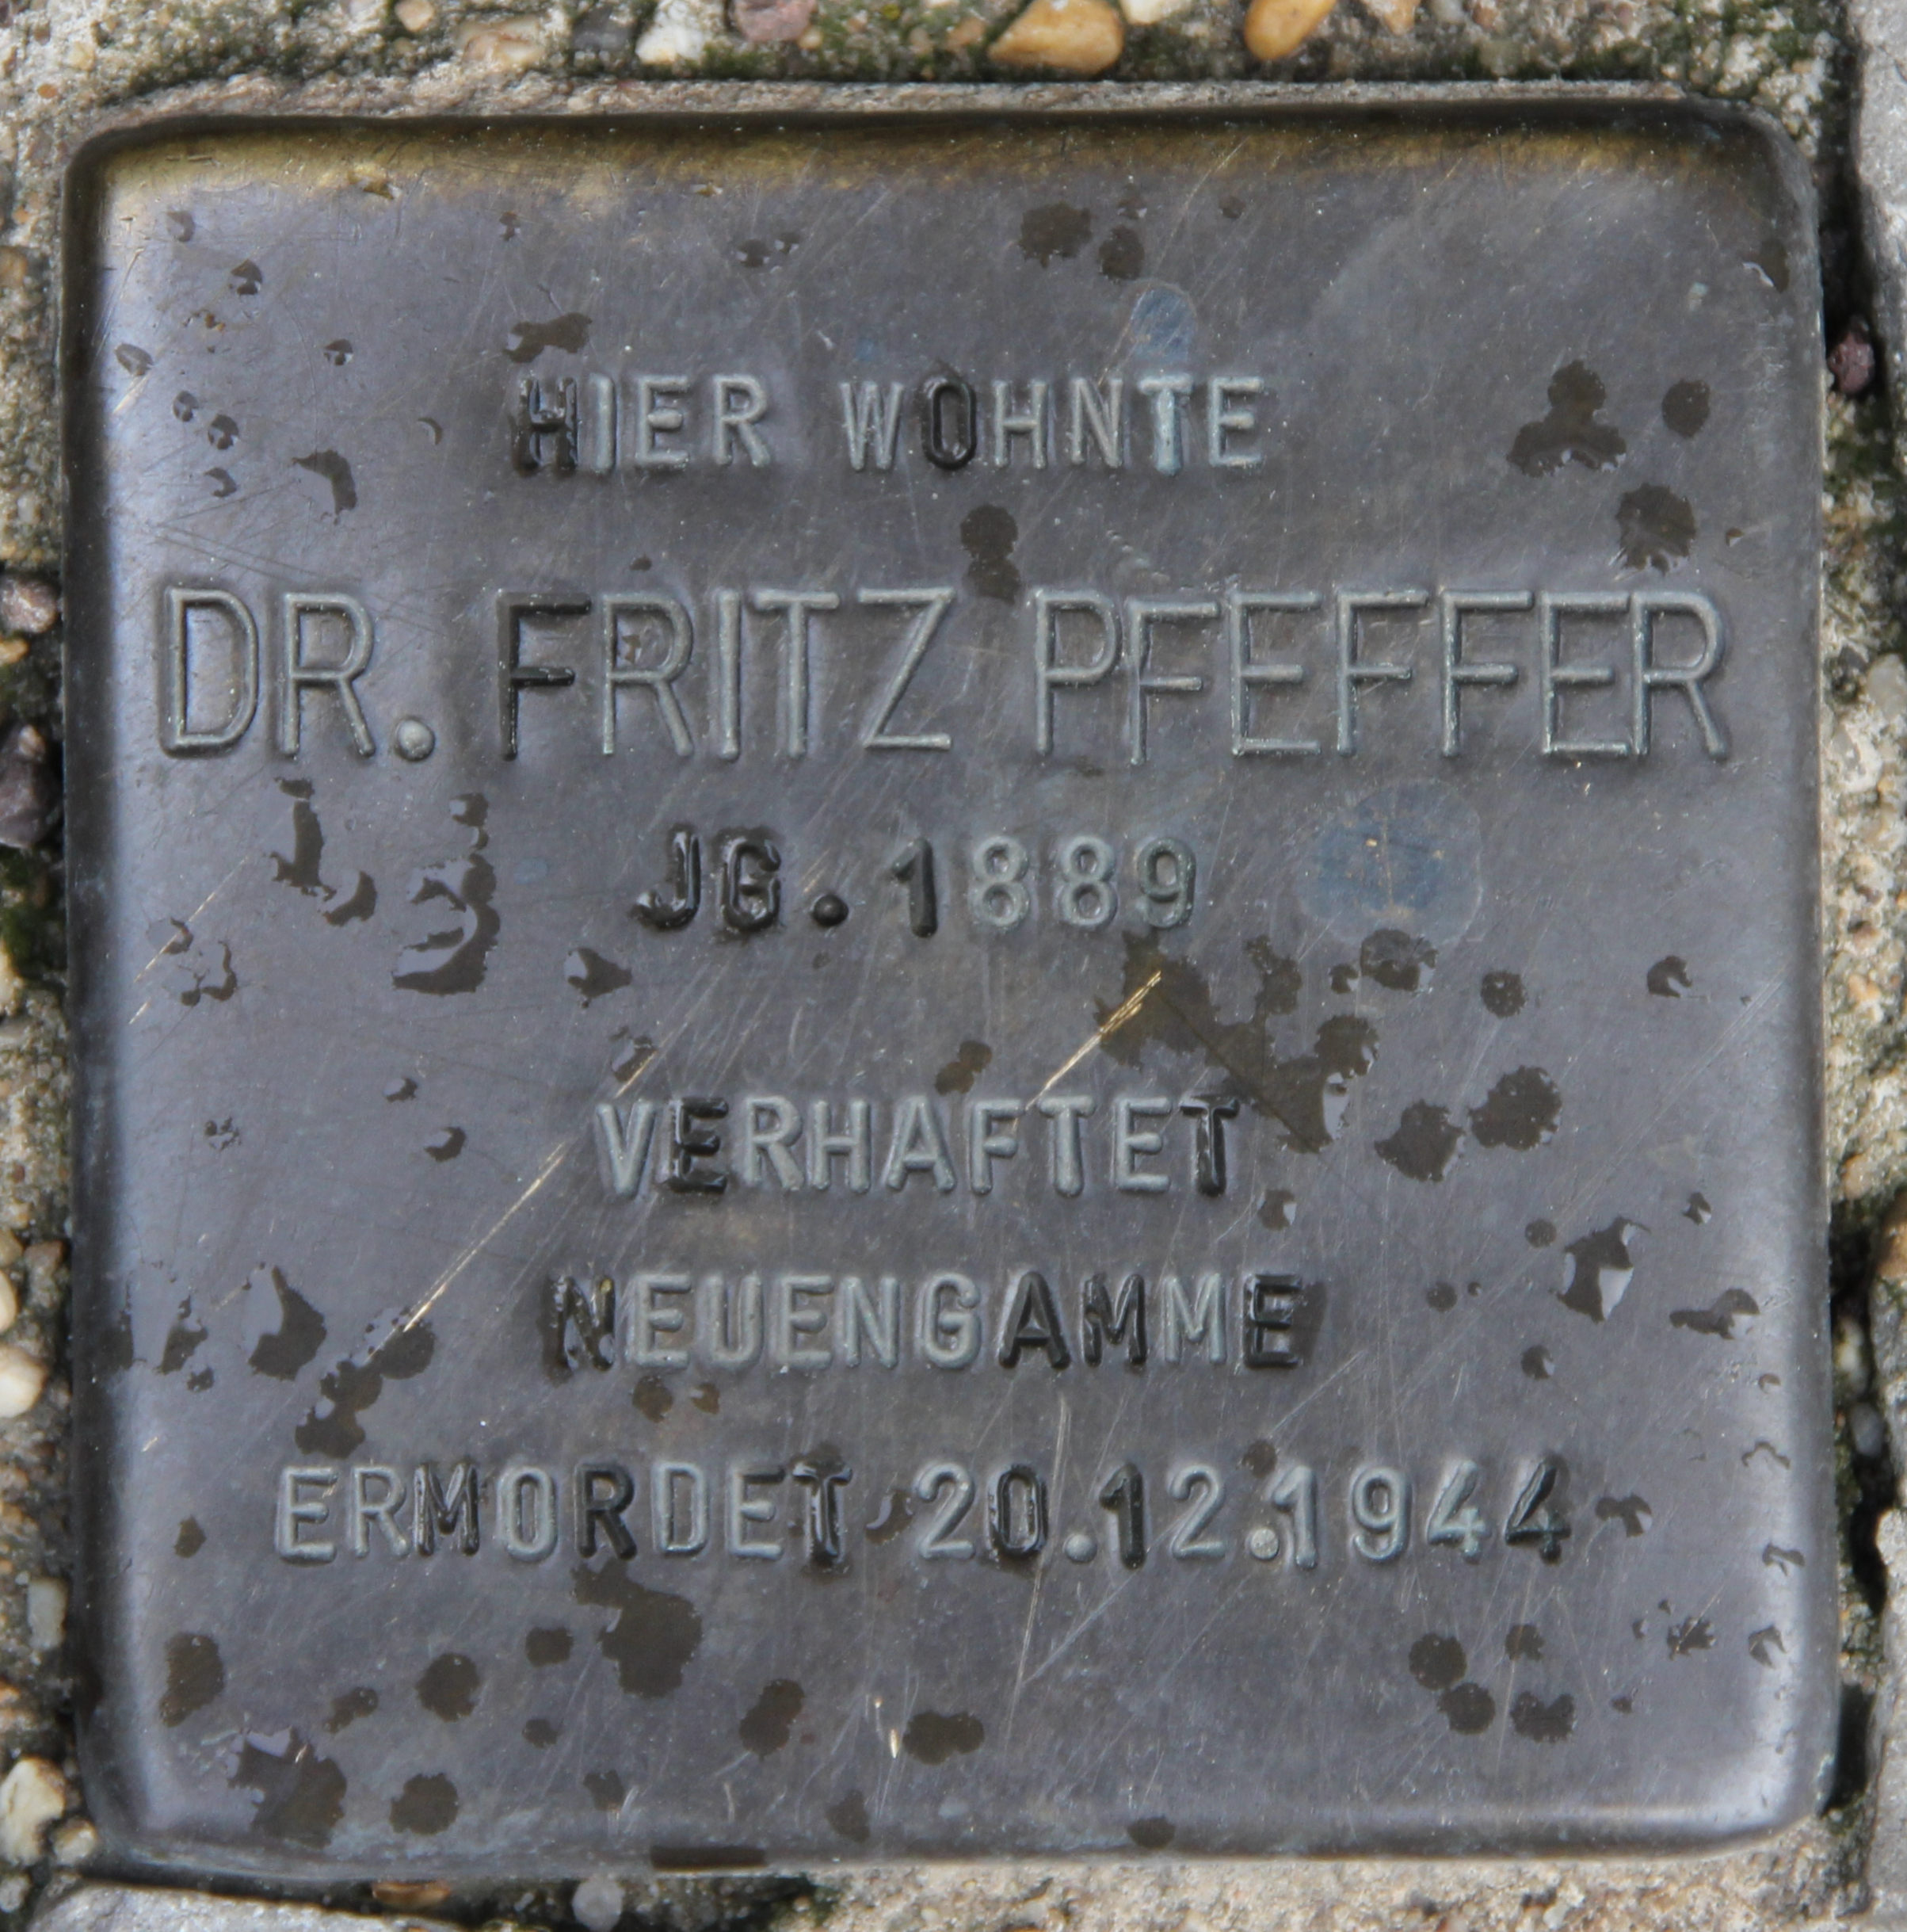 https://upload.wikimedia.org/wikipedia/commons/a/a5/Stolperstein_Lietzenburger_Str_20b_%28Sch%C3%B6nb%29_Fritz_Pfeffer.jpg